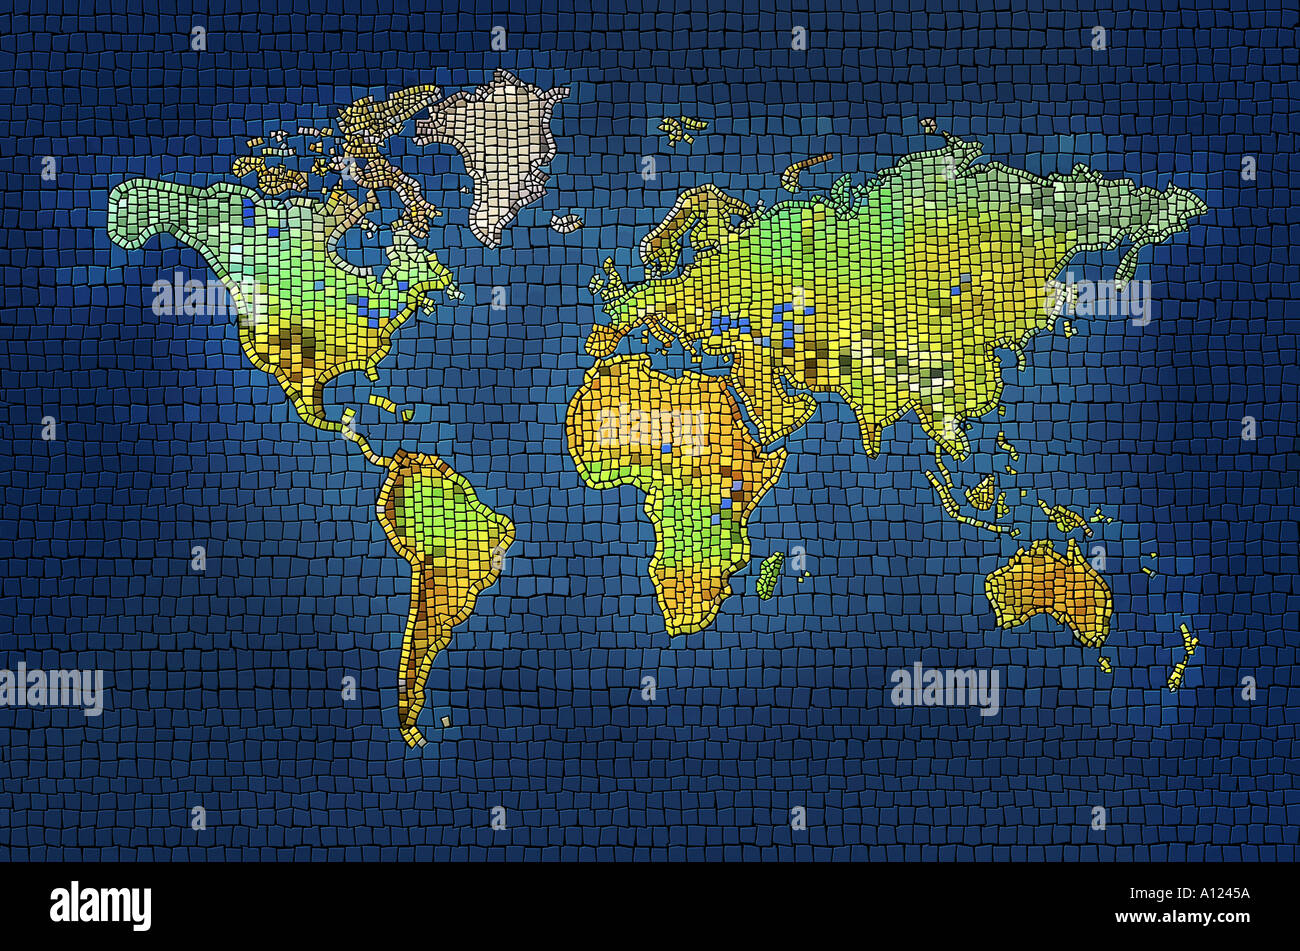 Mosiac map of the world - Stock Image